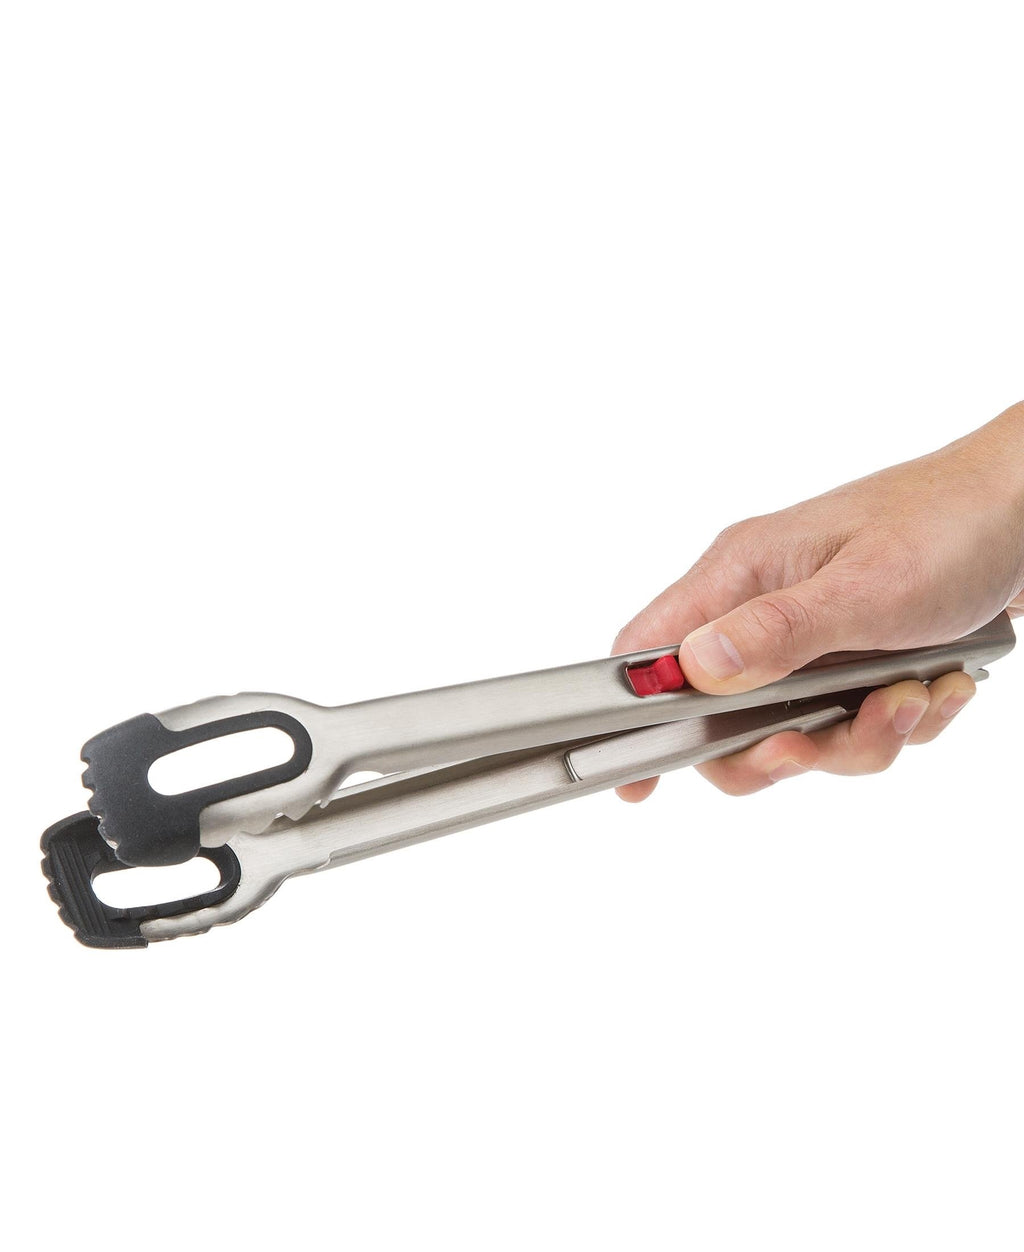 Progressive 22cm One Handed Locking Tongs - Silver